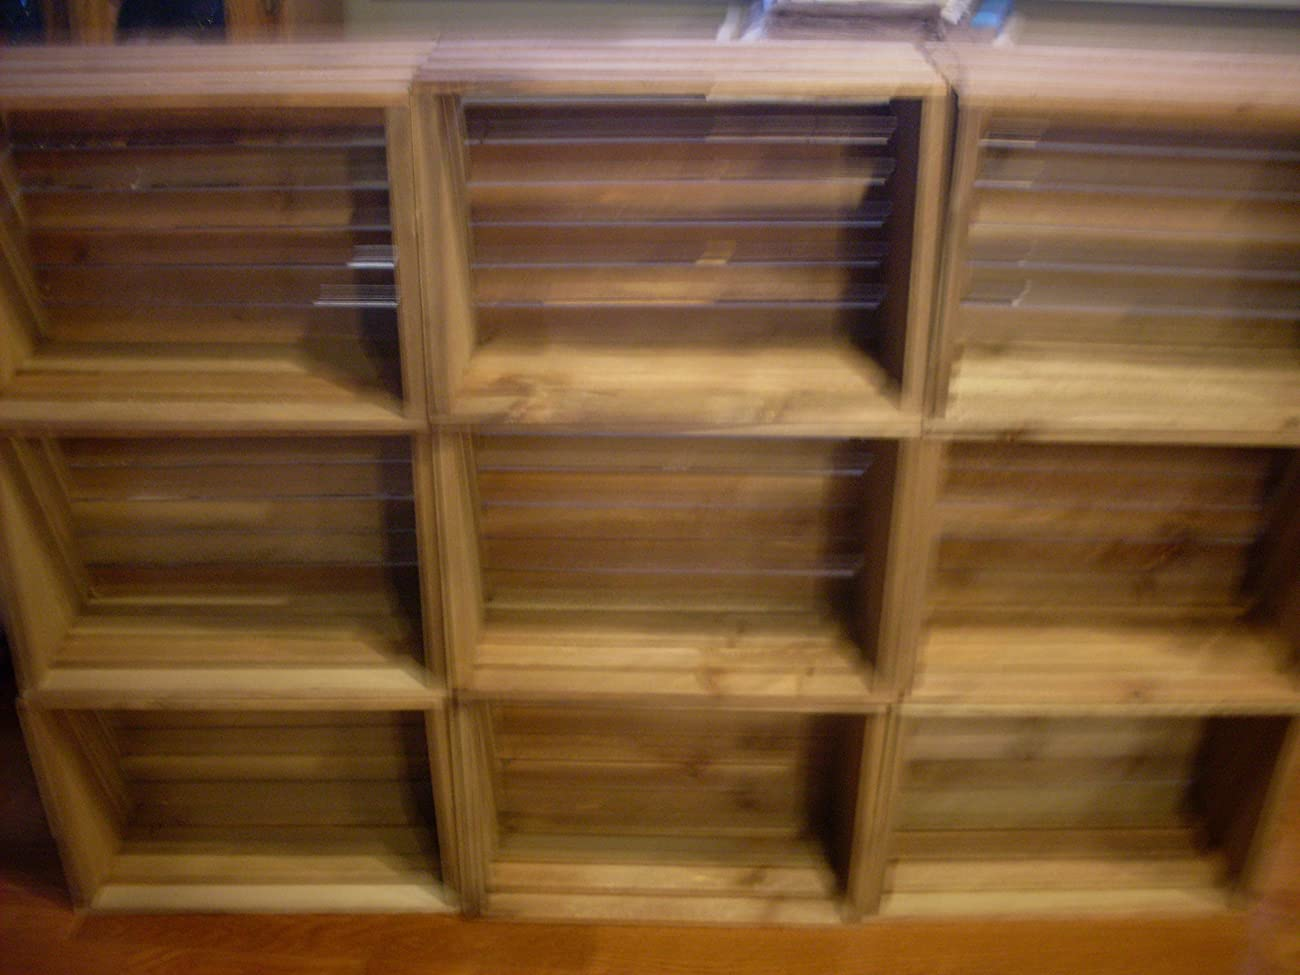 Rustic Nesting Wood Crates Set of 5 Made in the USA 1